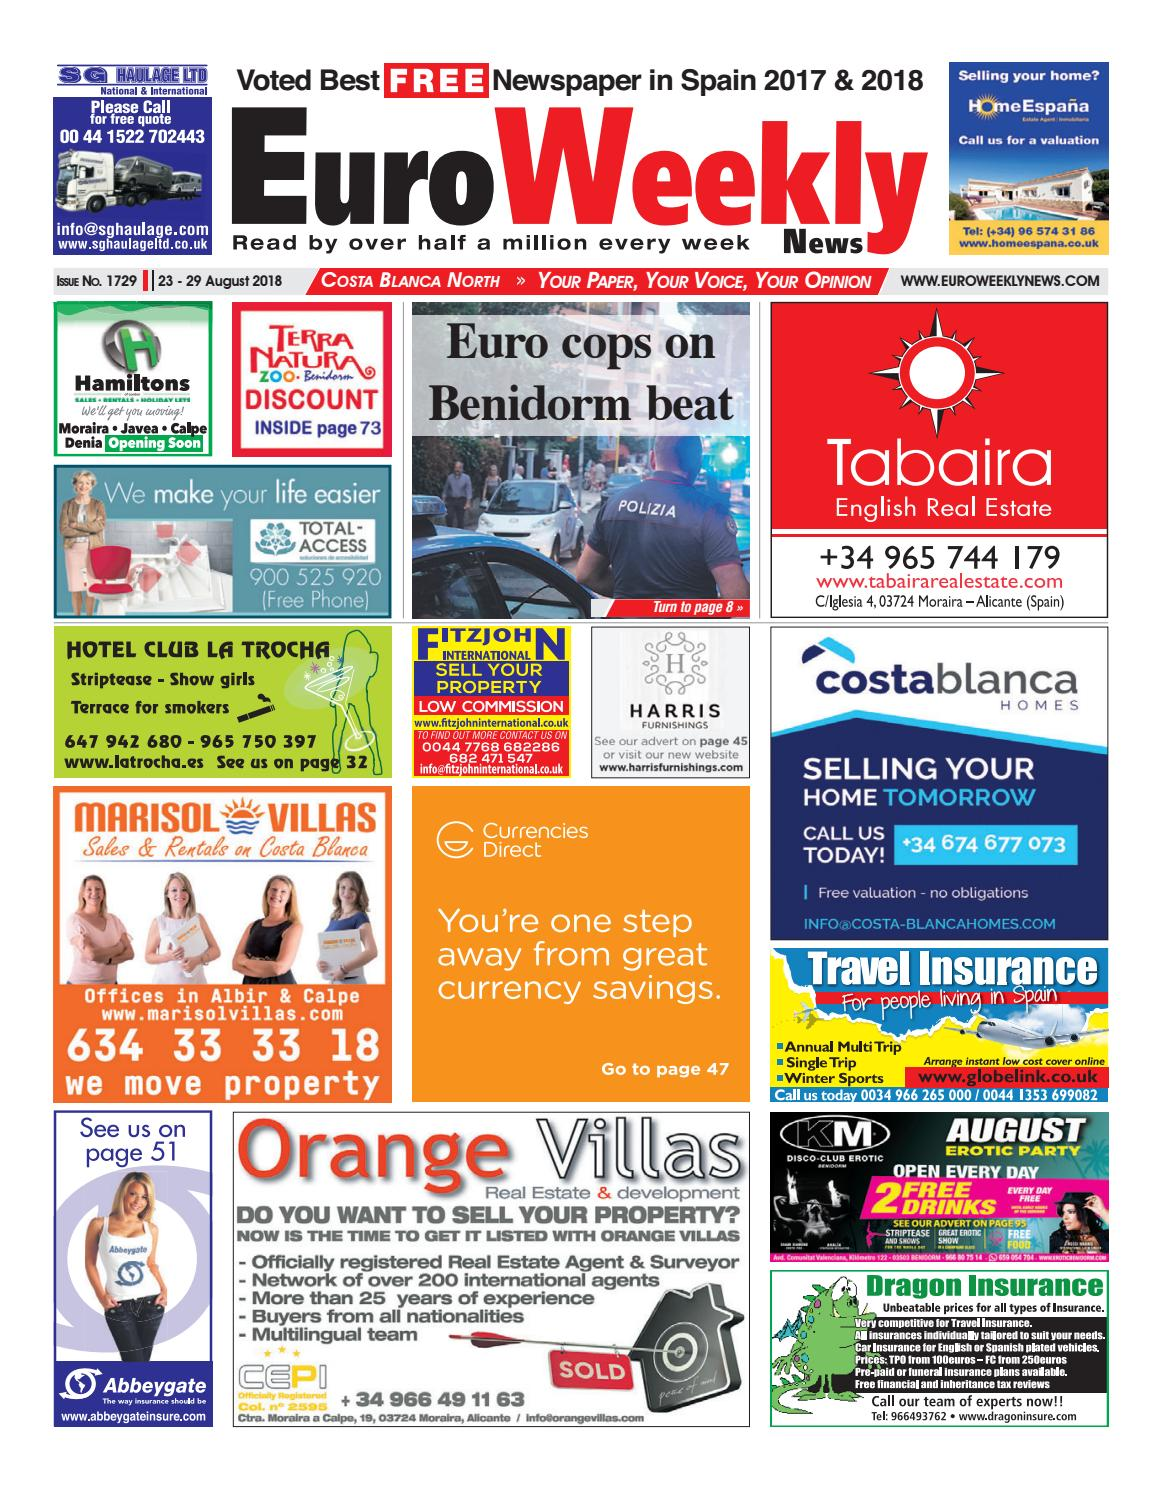 a47b620f1916 Euro Weekly News - Costa Blanca North 23 - 29 August 2018 Issue 1729 ...